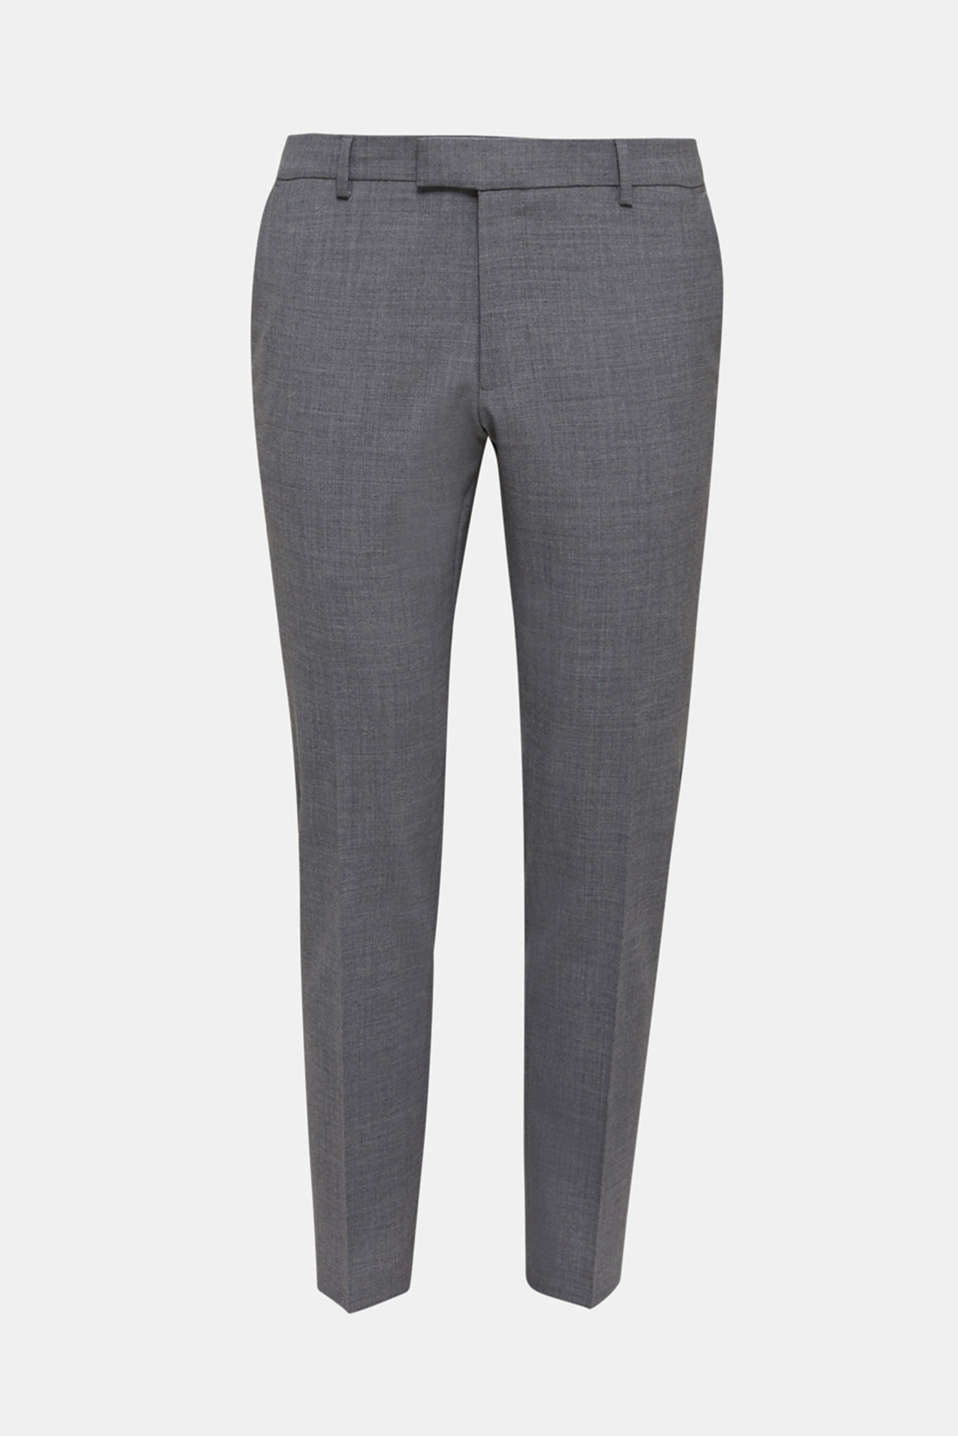 ACTIVE SUIT trousers made of blended wool, DARK GREY 5, detail image number 5